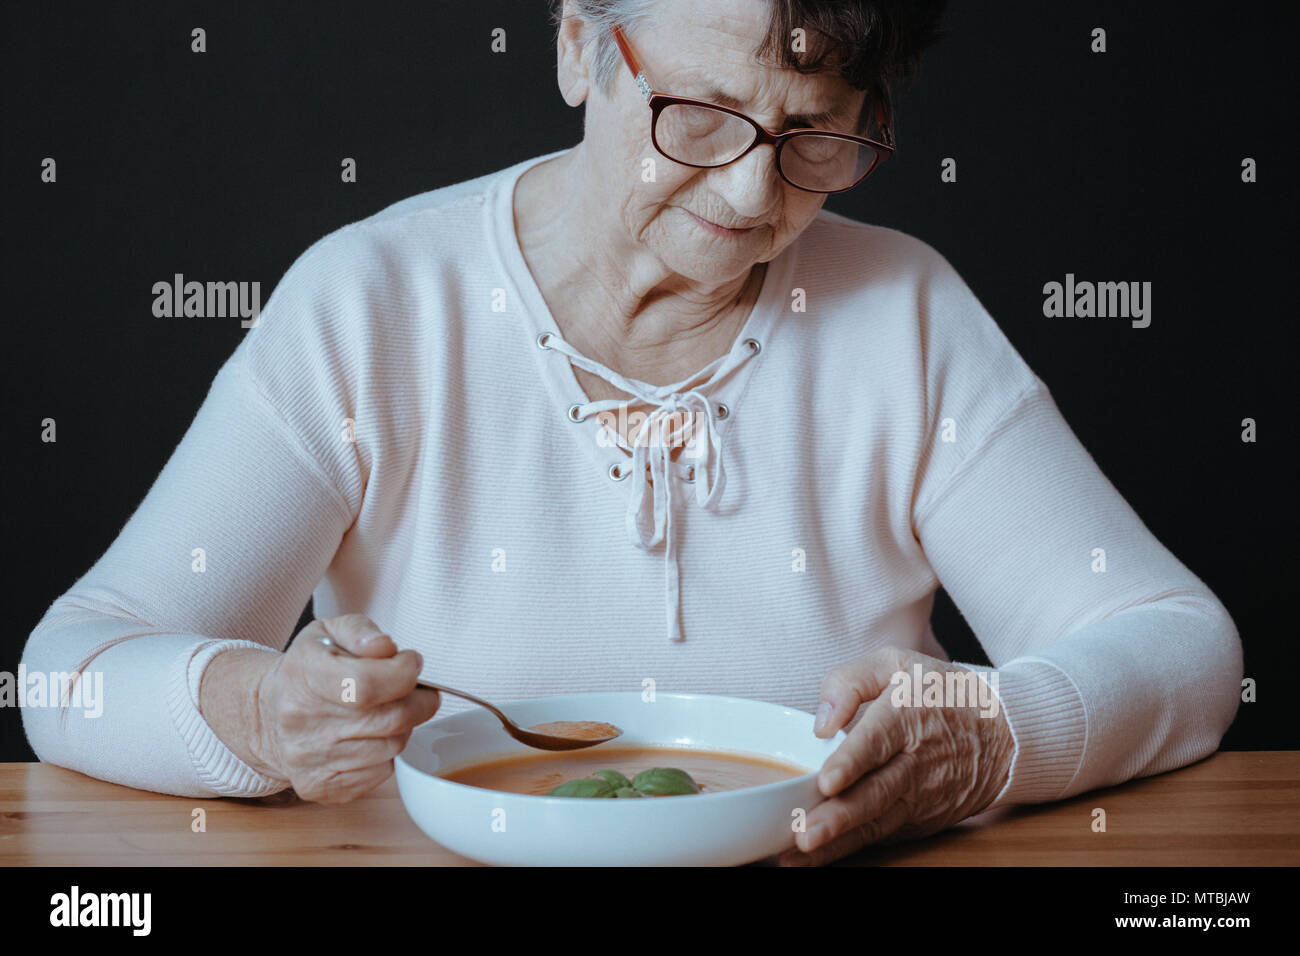 Senior woman suffering from inappetence, sitting beside table - Stock Image